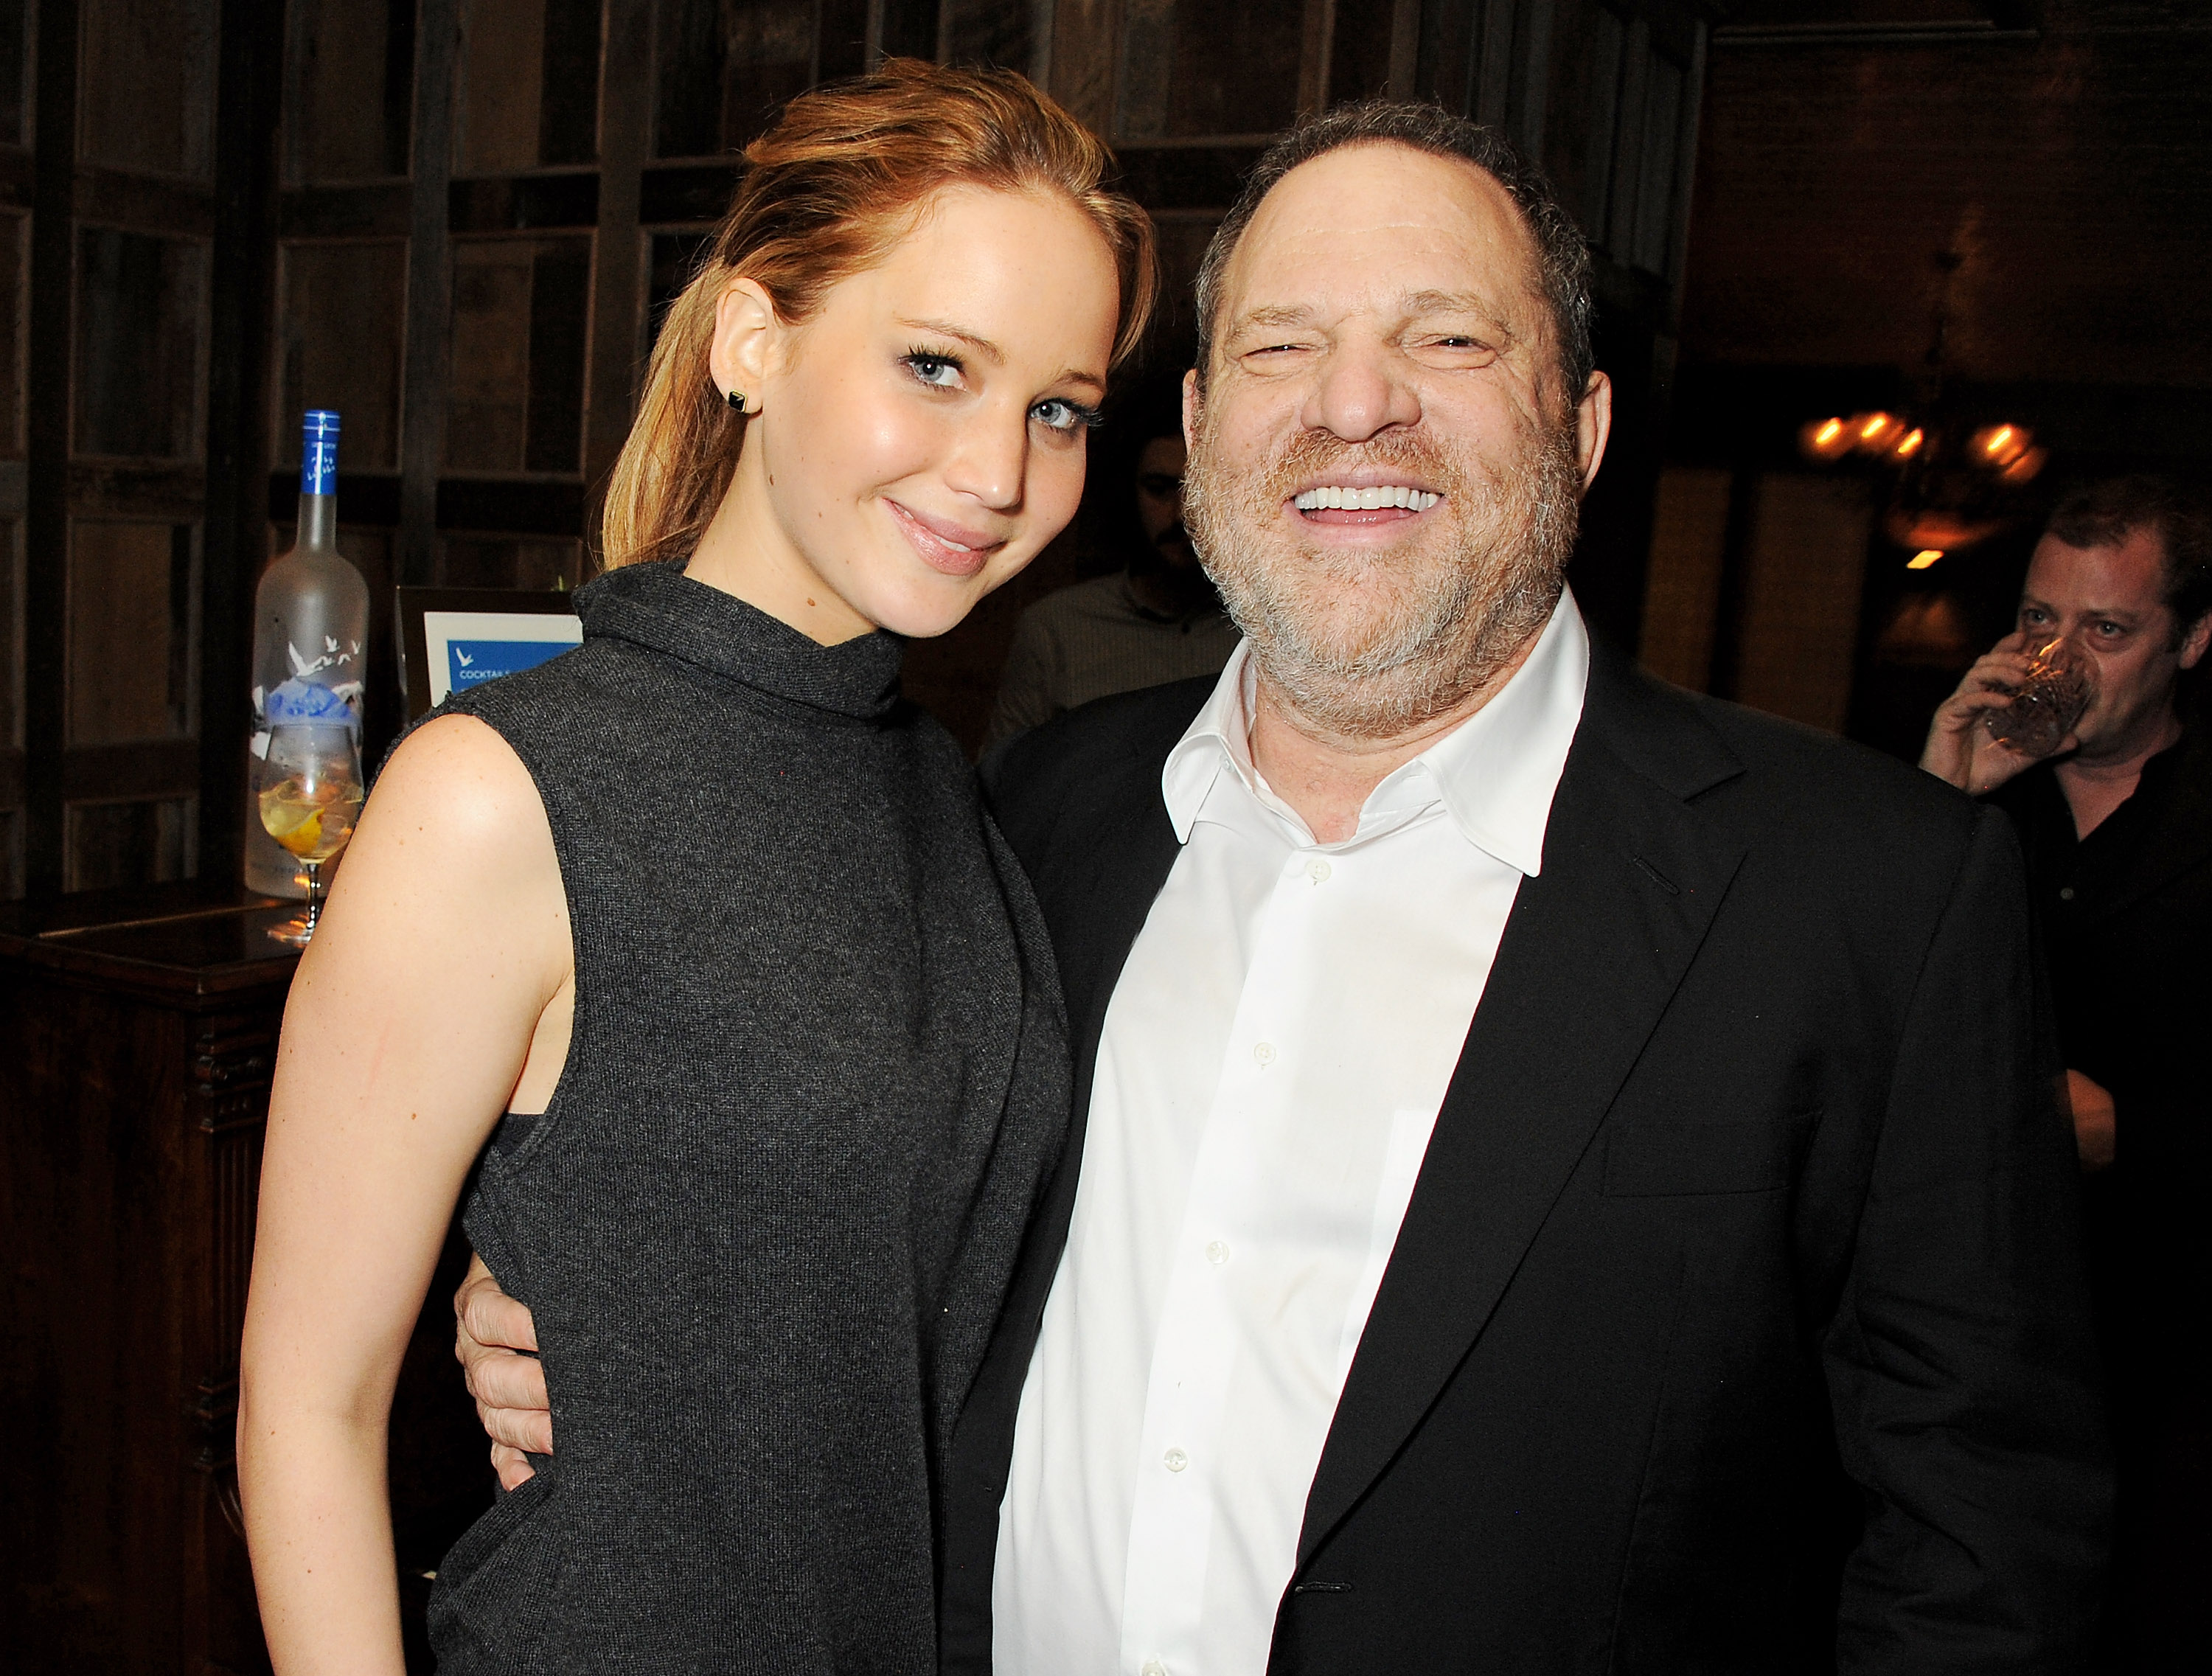 Jennifer Lawrence issues statement as lawsuit claims Harvey Weinstein 'bragged about sex with her'